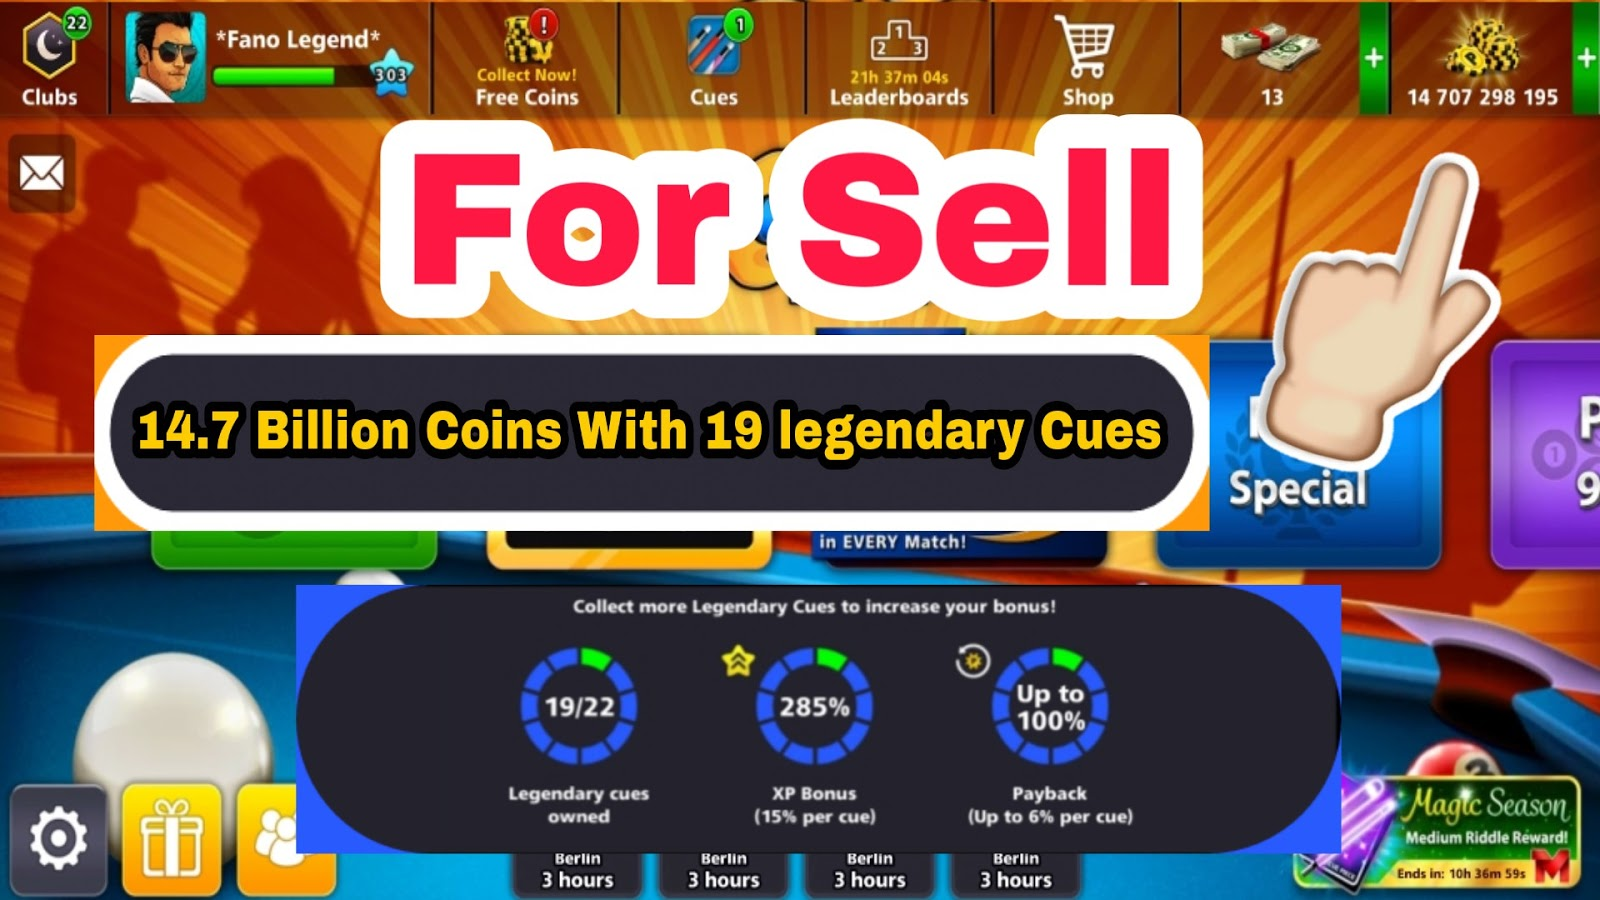 8 63 Billion Coins With 19 Legendary Cues Account For Sell